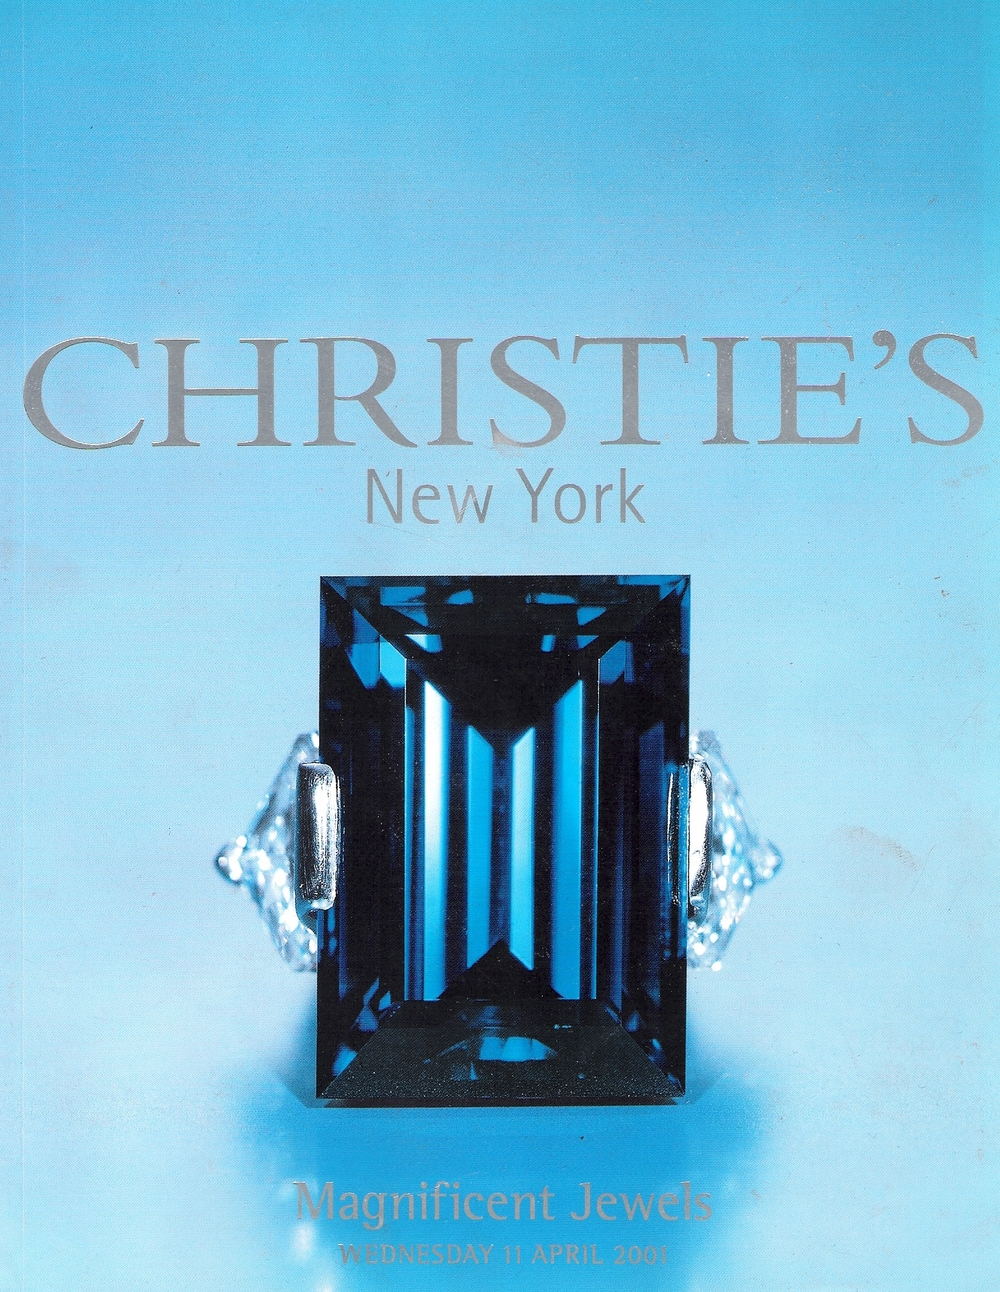 Mr. Rockefeller's Sapphire  / photo © Christies